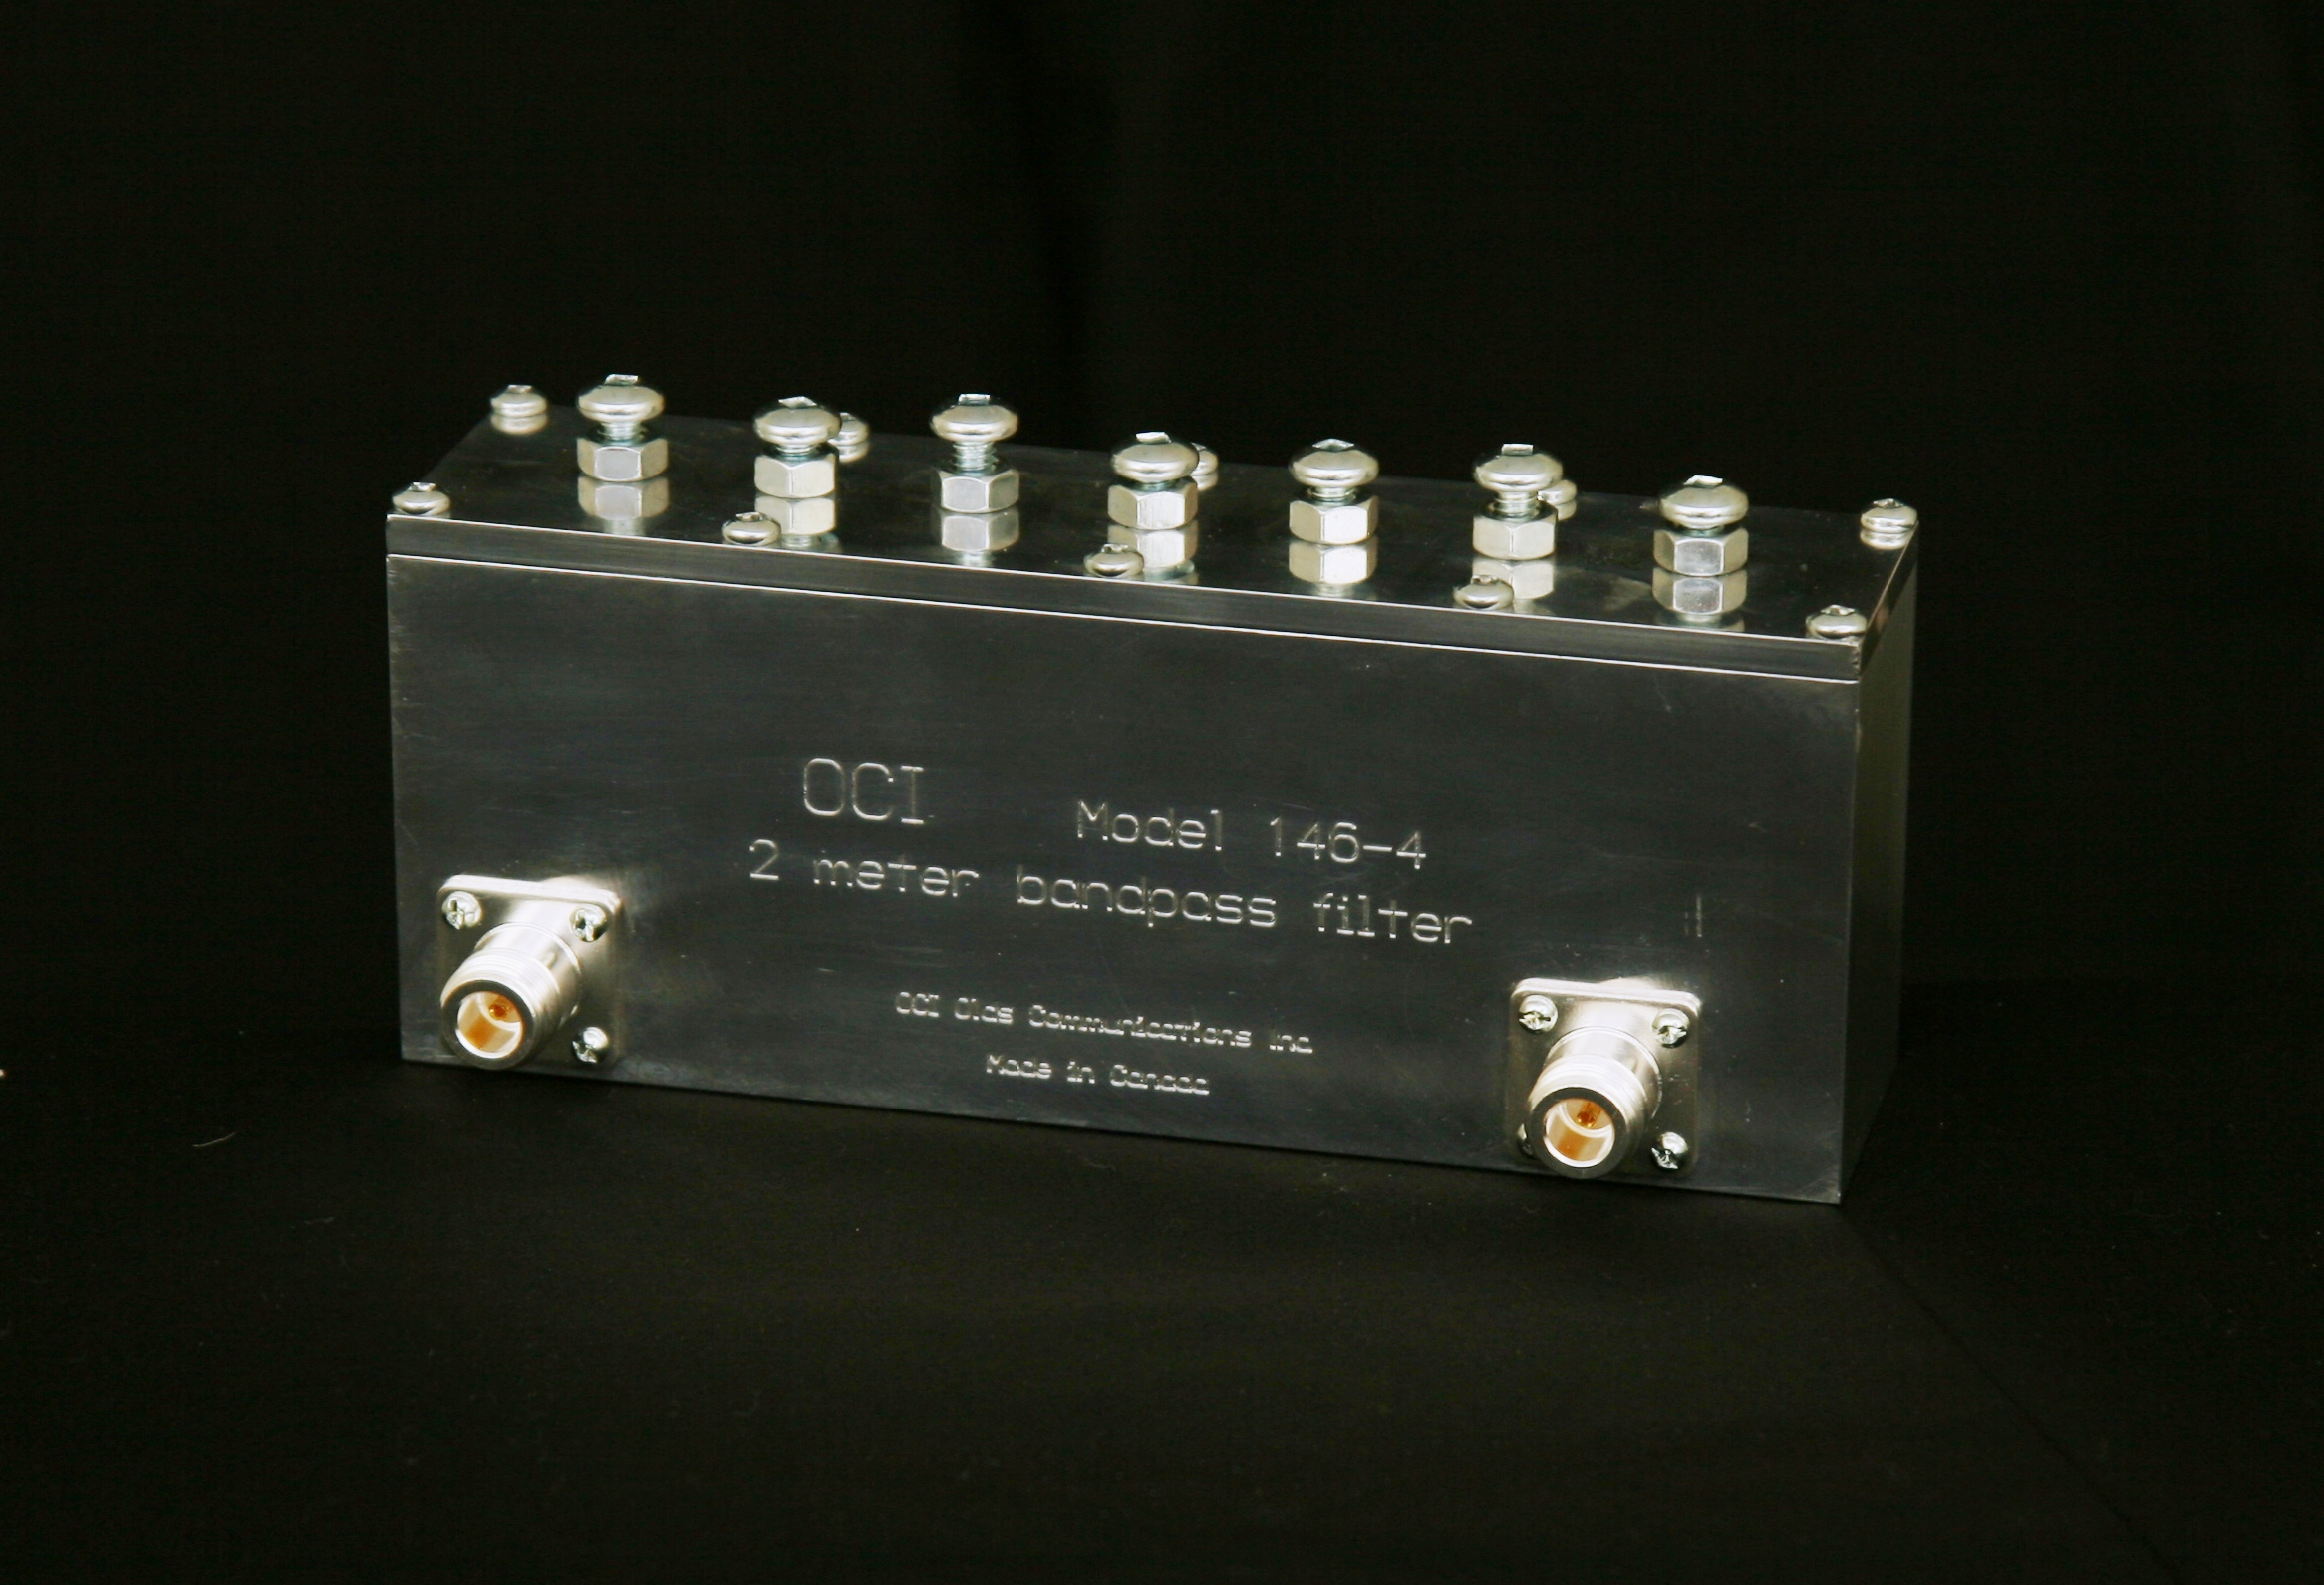 OCI Model 146-4 2 meter bandpass filter picture